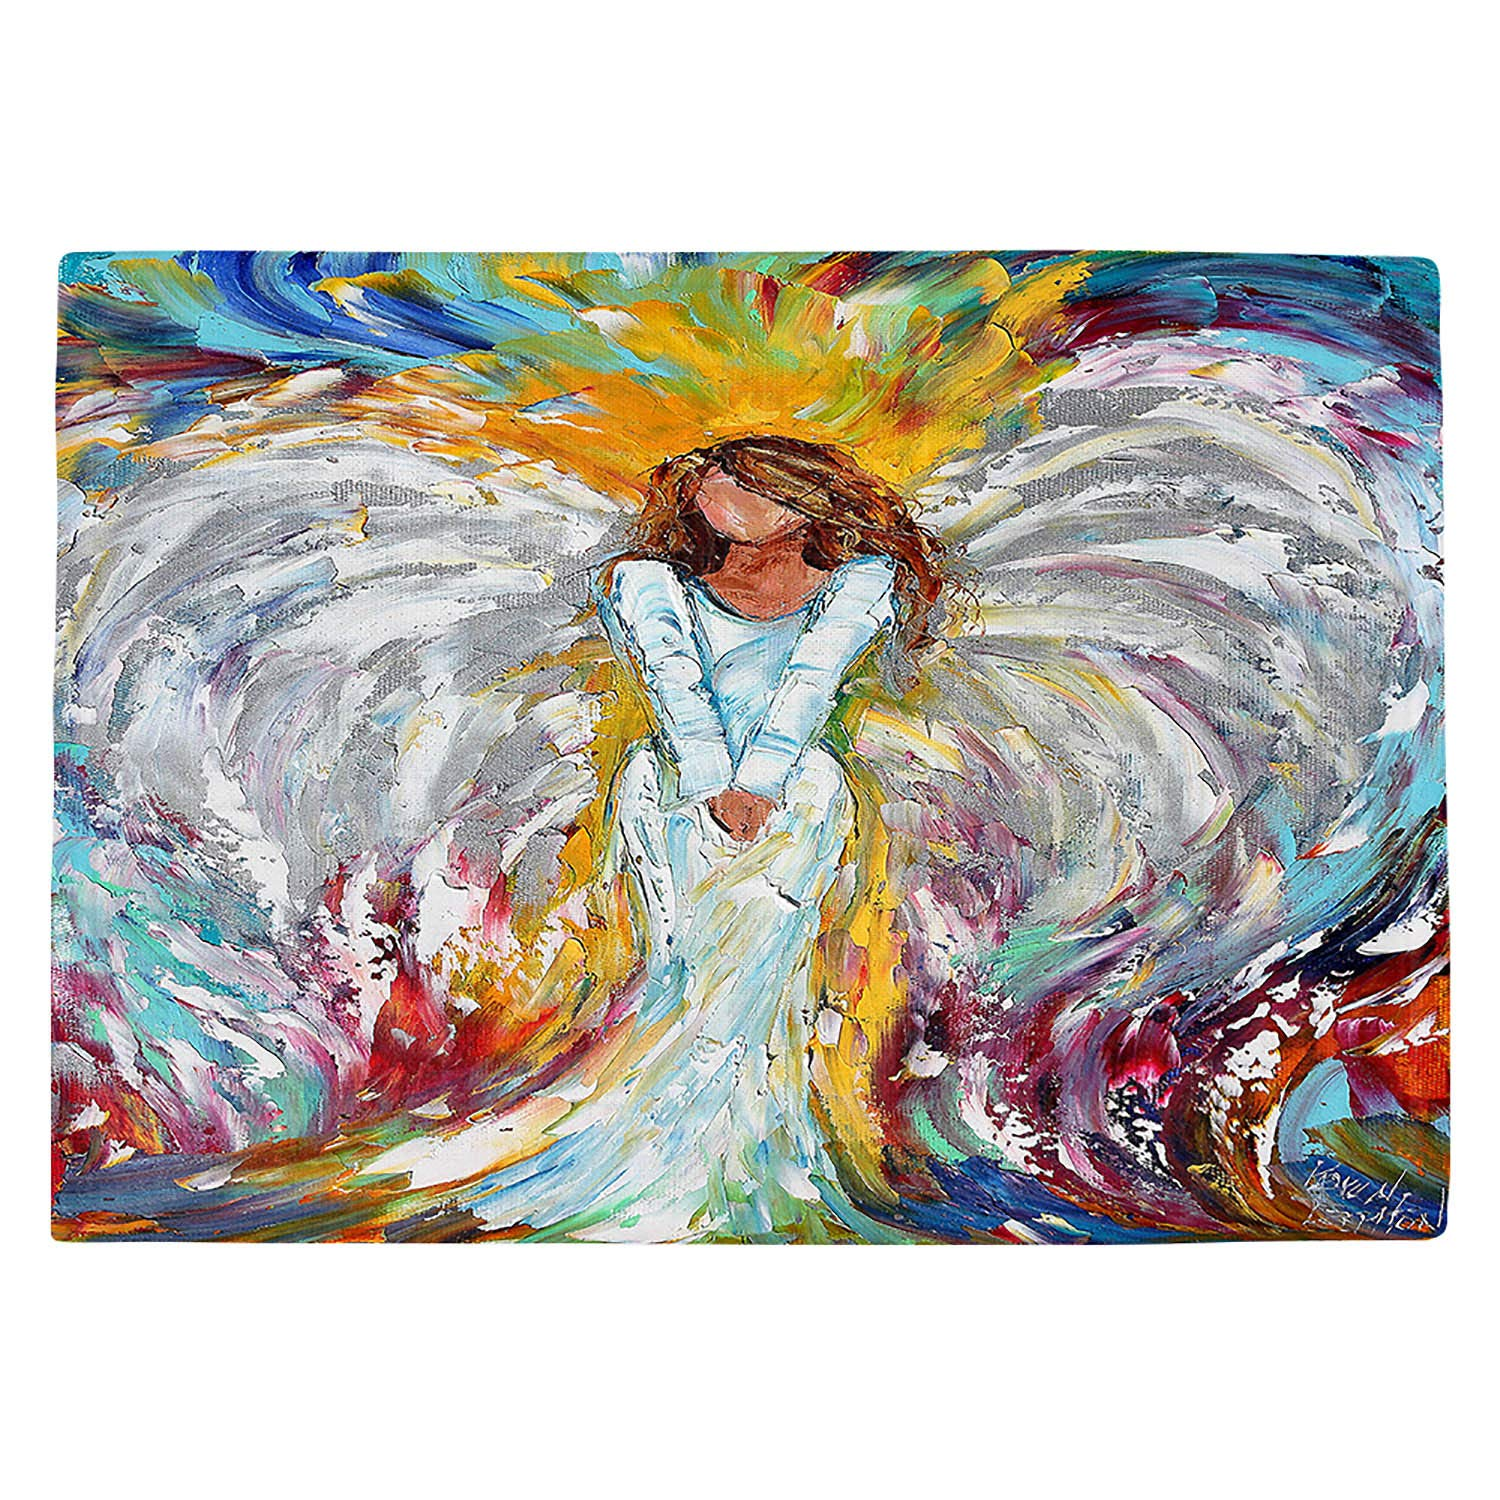 DIANOCHEキッチンPlaceマットby Karen Tarlton – Angel Watching Over Me Set of 4 Placemats PM-KarenTarlAngelWatchingOverMe2 Set of 4 Placemats  B01EXSIWPE